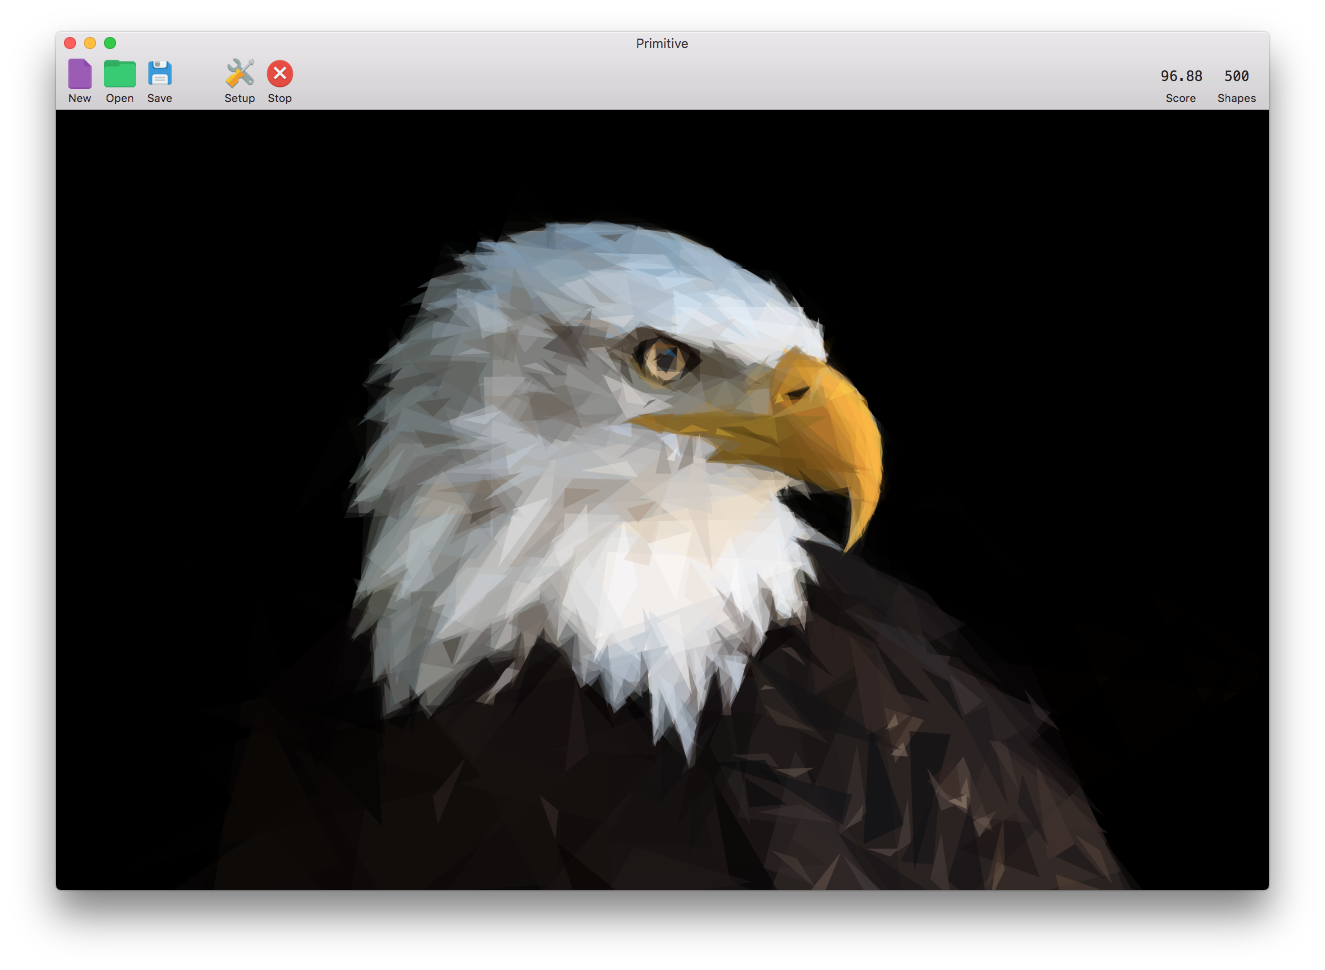 Primitive for macOS